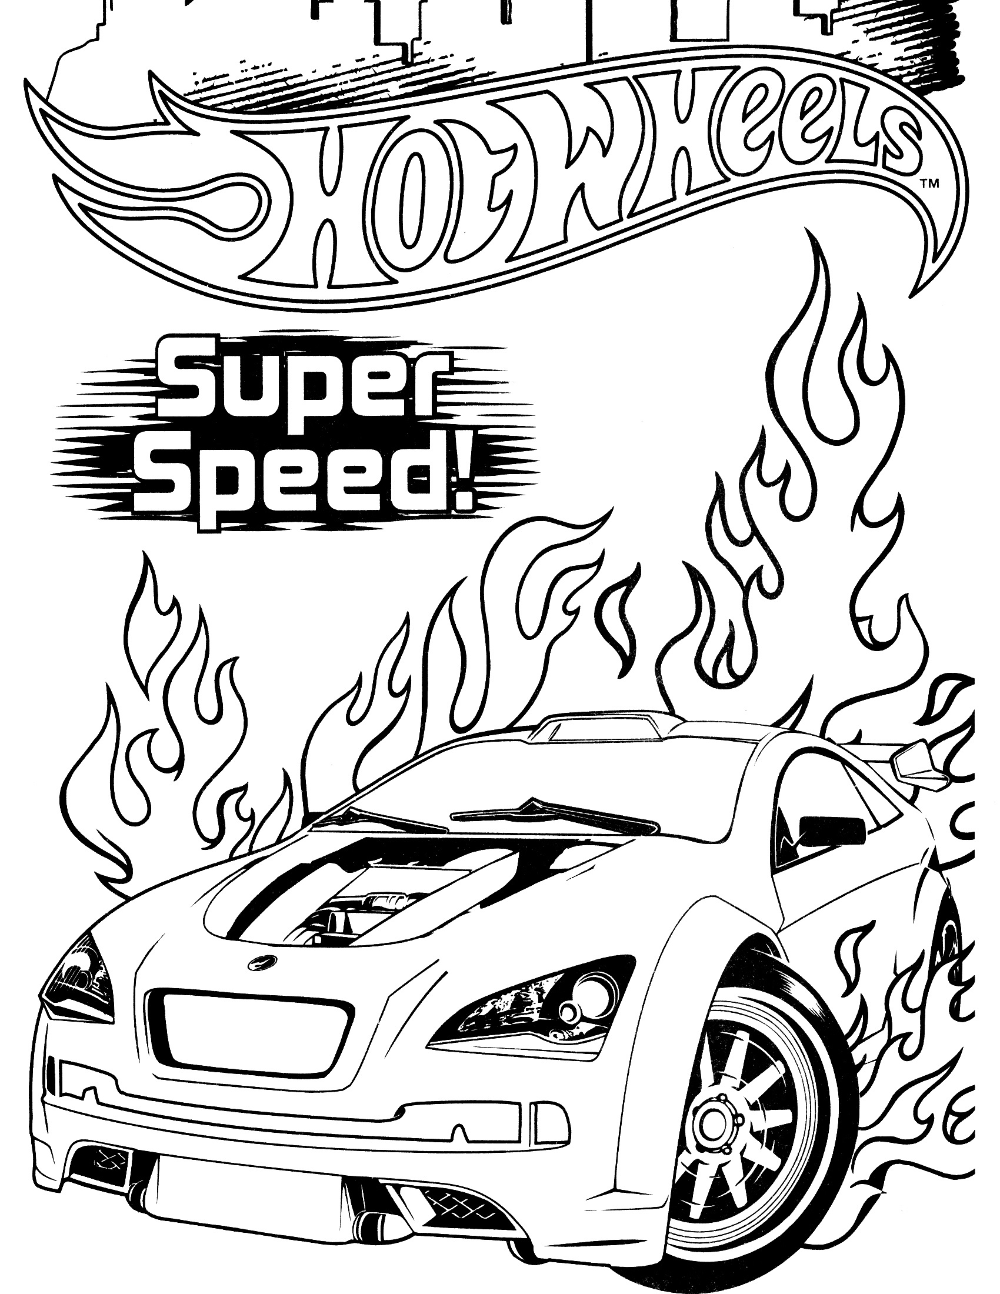 Hot Wheels Coloring Pages for Car Lovers | Hot wheels ...